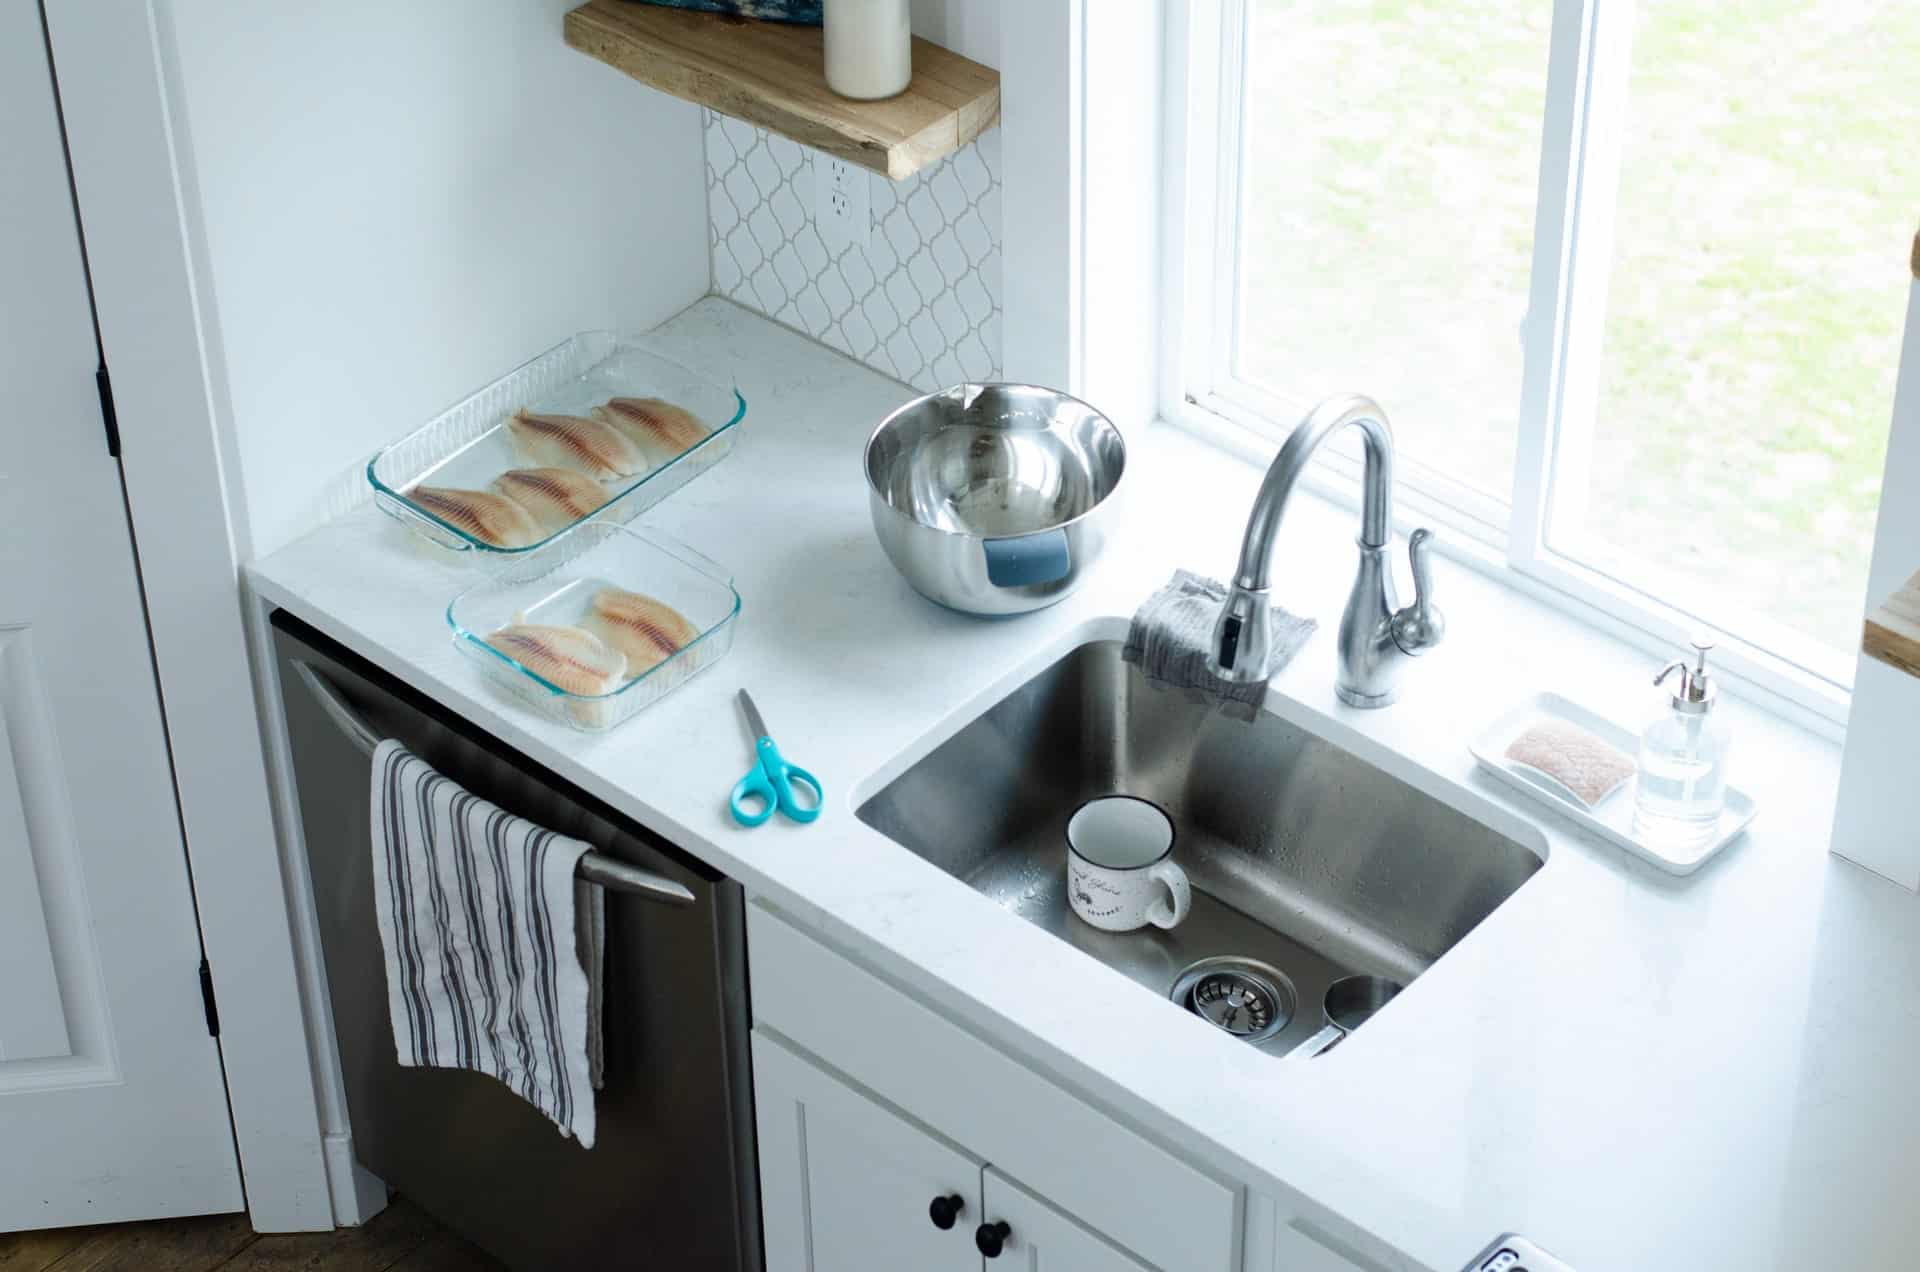 Stainless steel sink in a small white kitchen